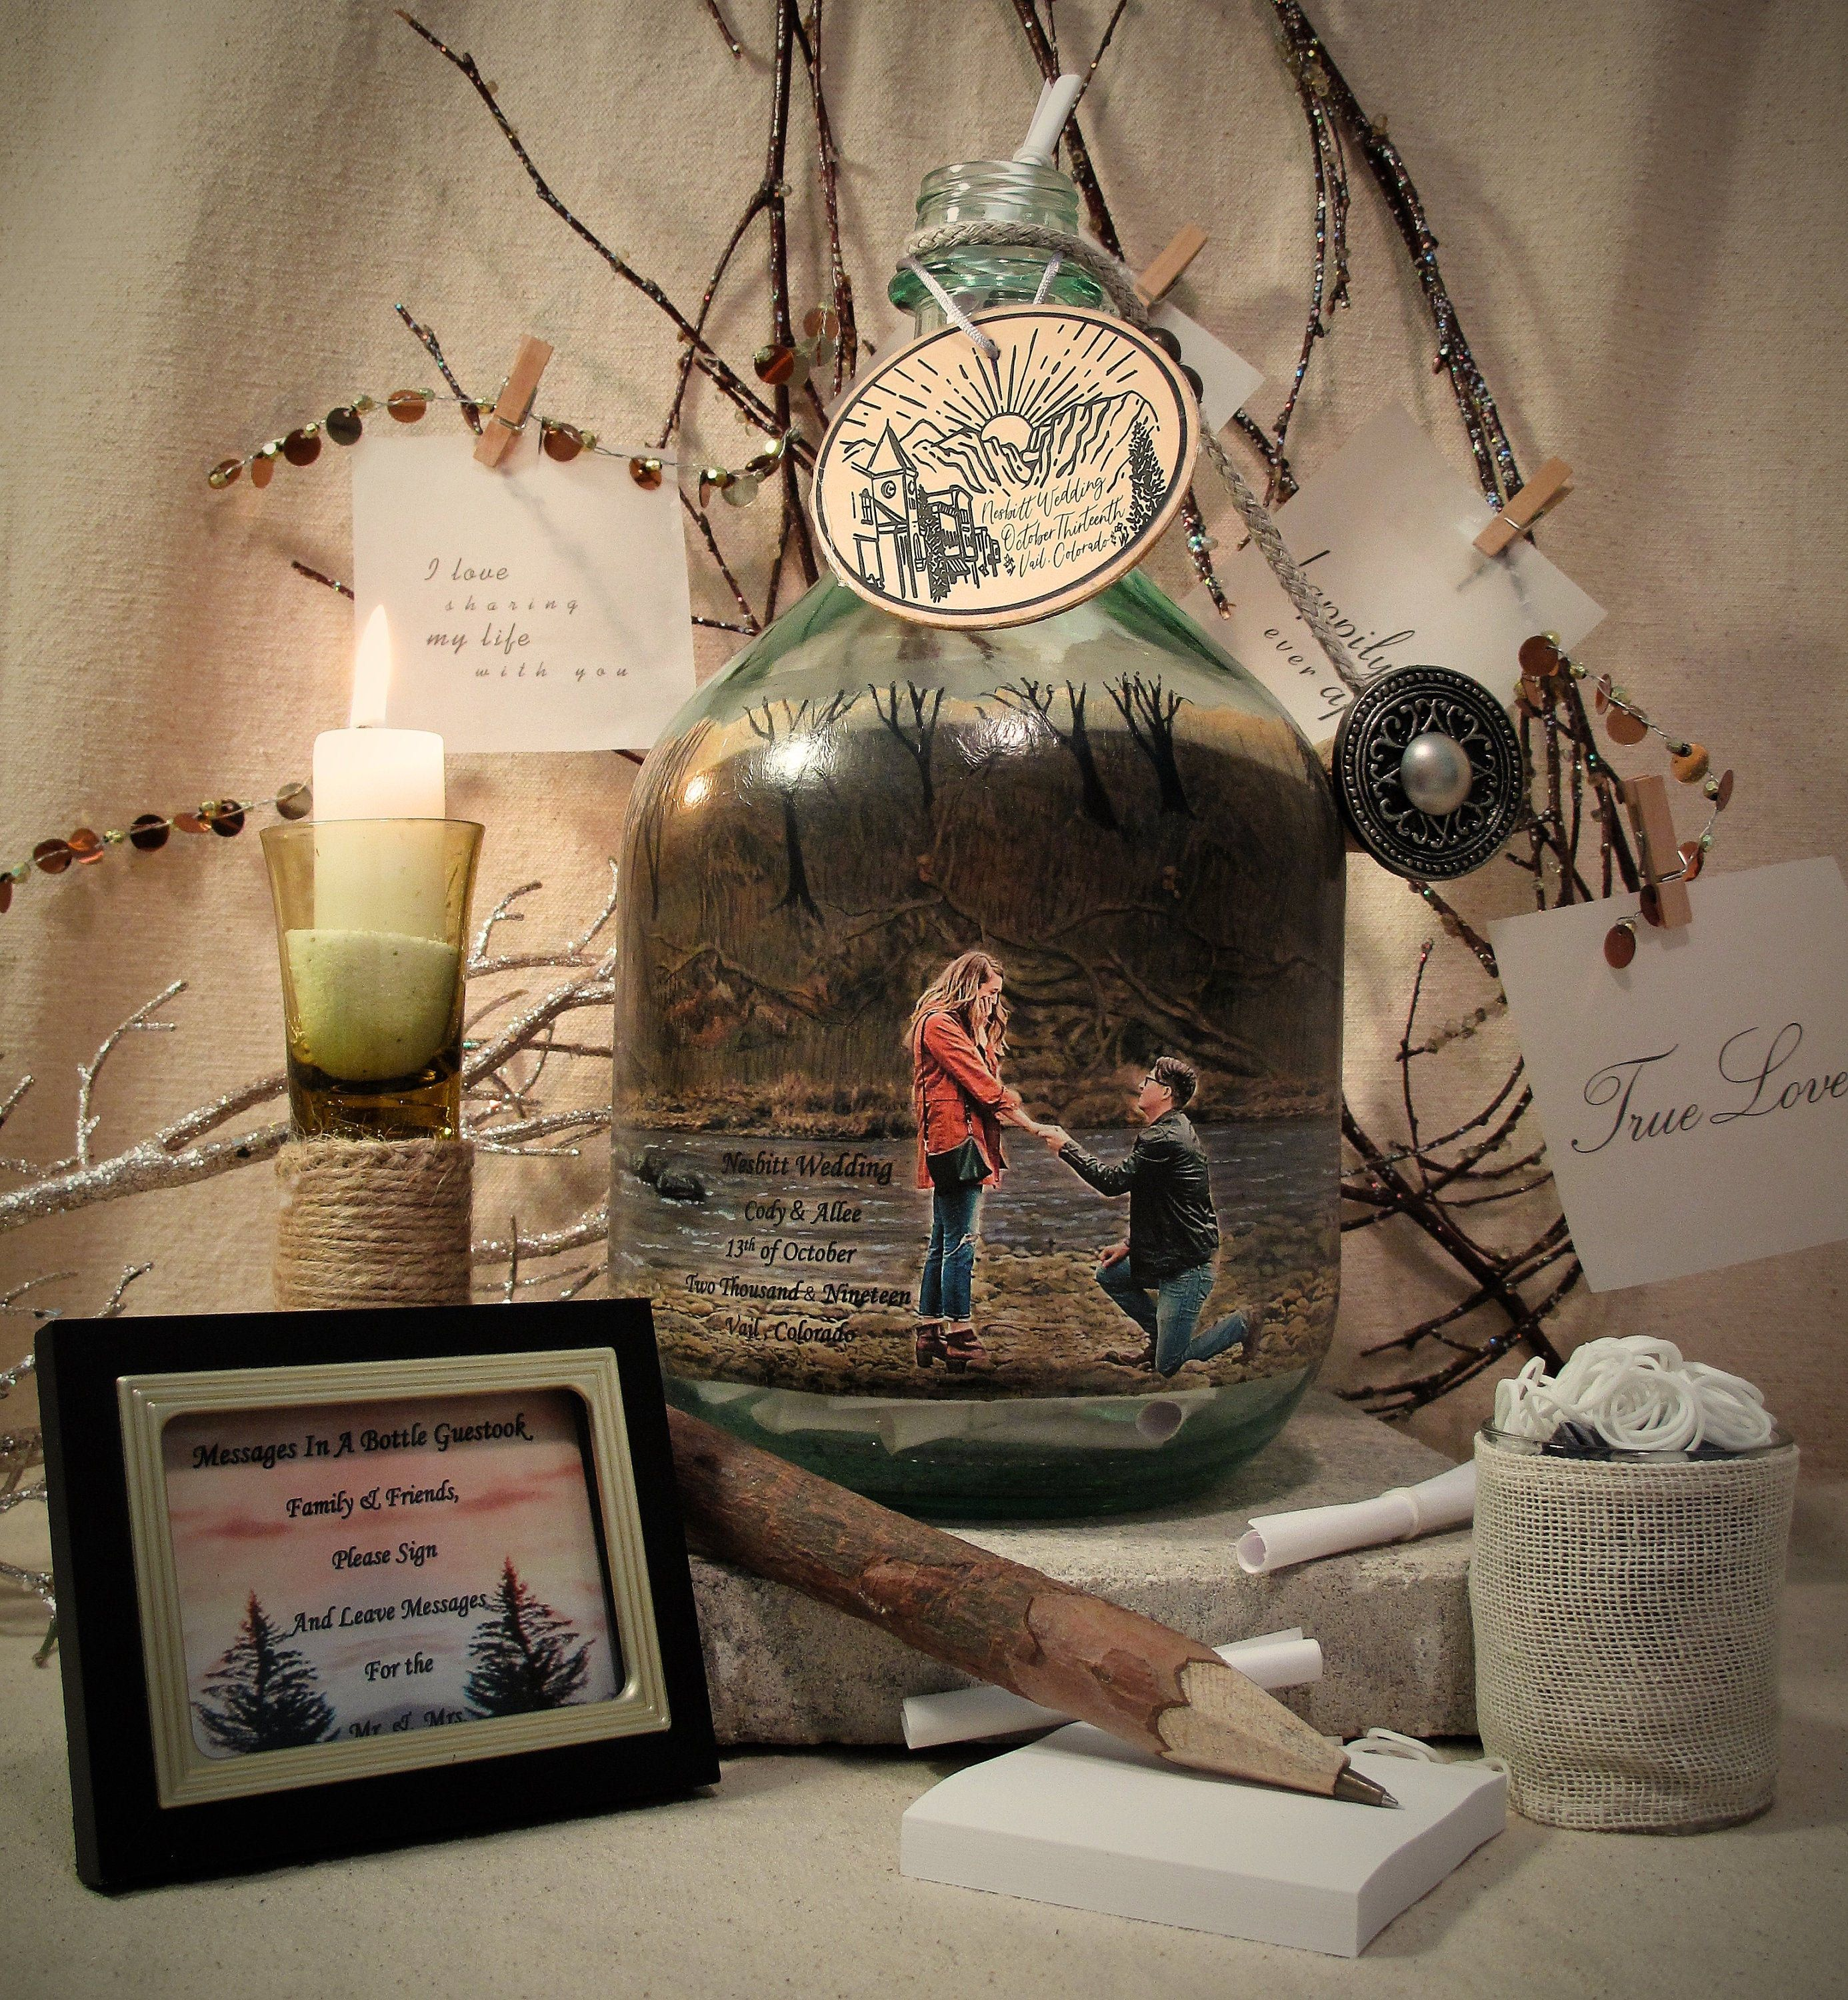 The Proposal, Messages In A Bottle Guestbook Or Well